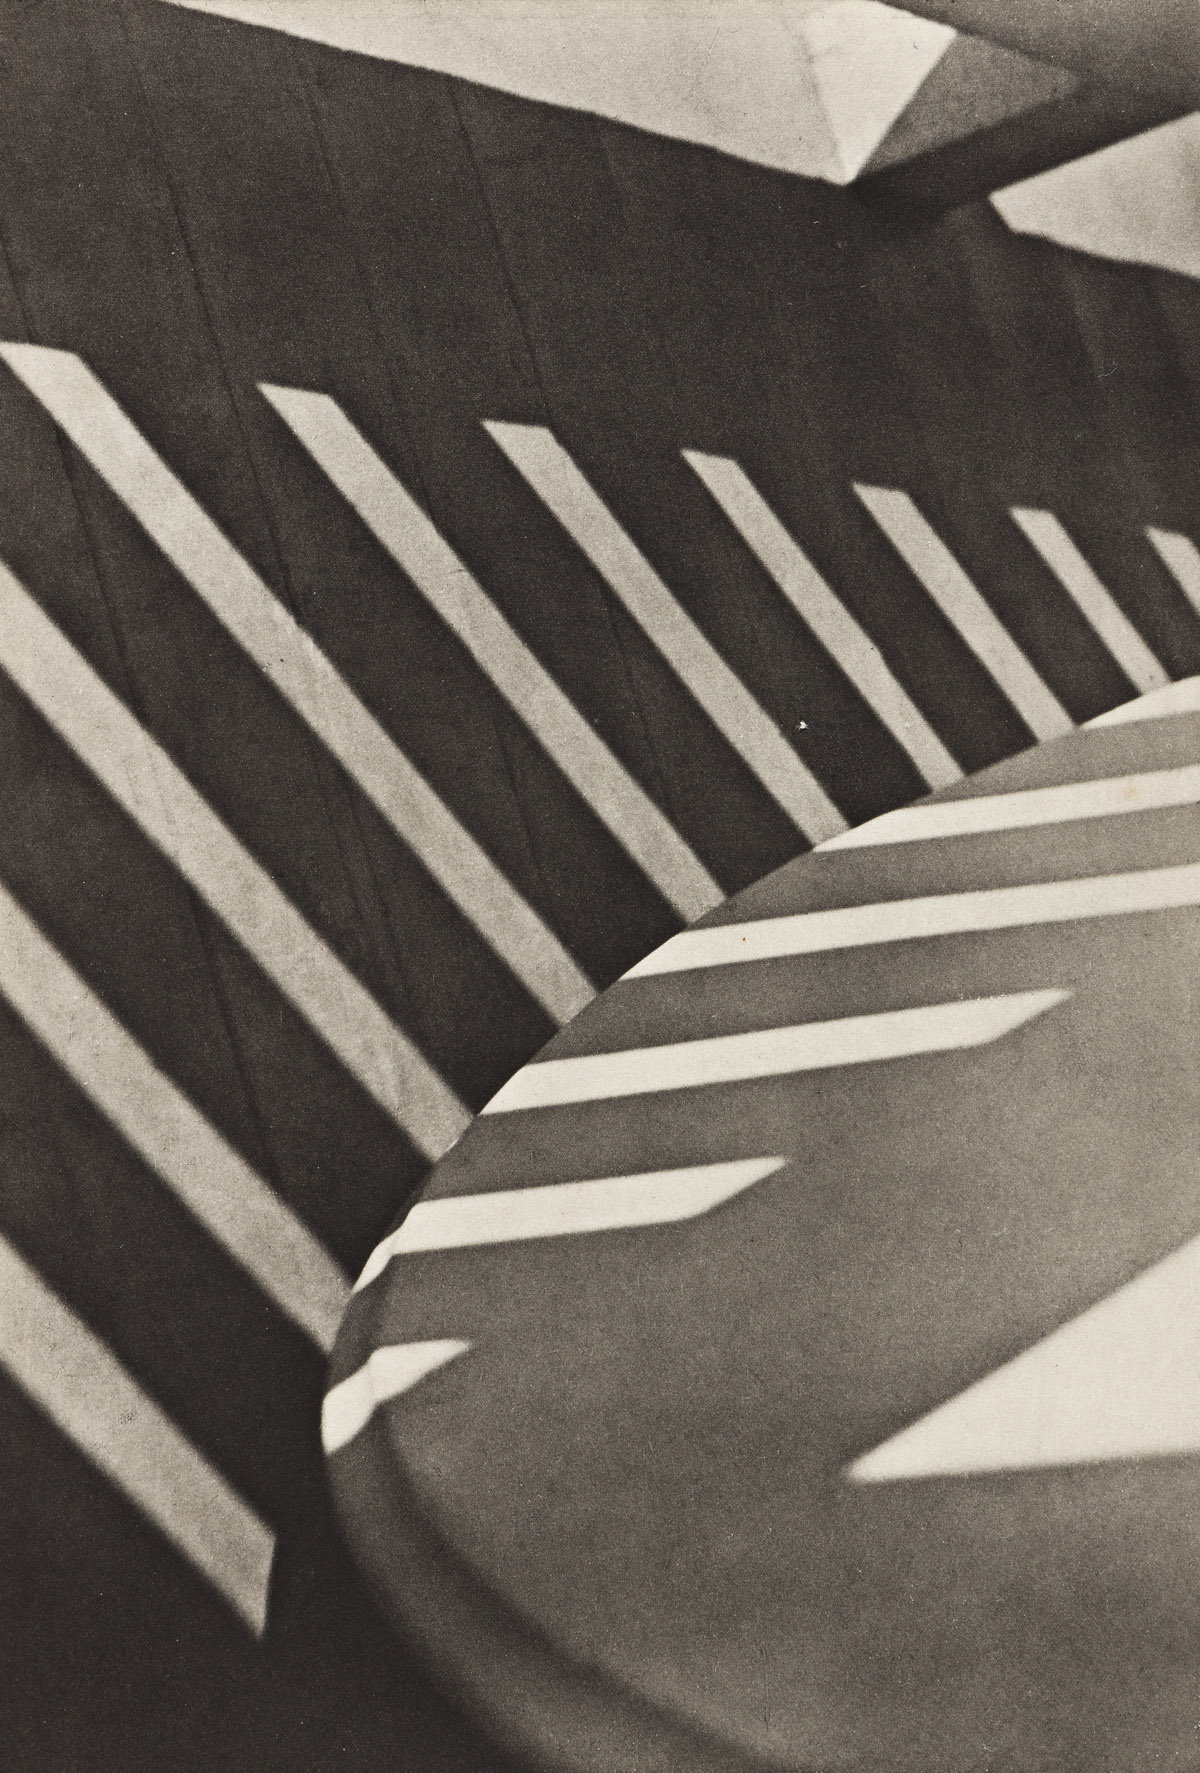 PAUL STRAND (1890-1976) Abstraction, Porch Shadows, from Camera Work Number 49-50.